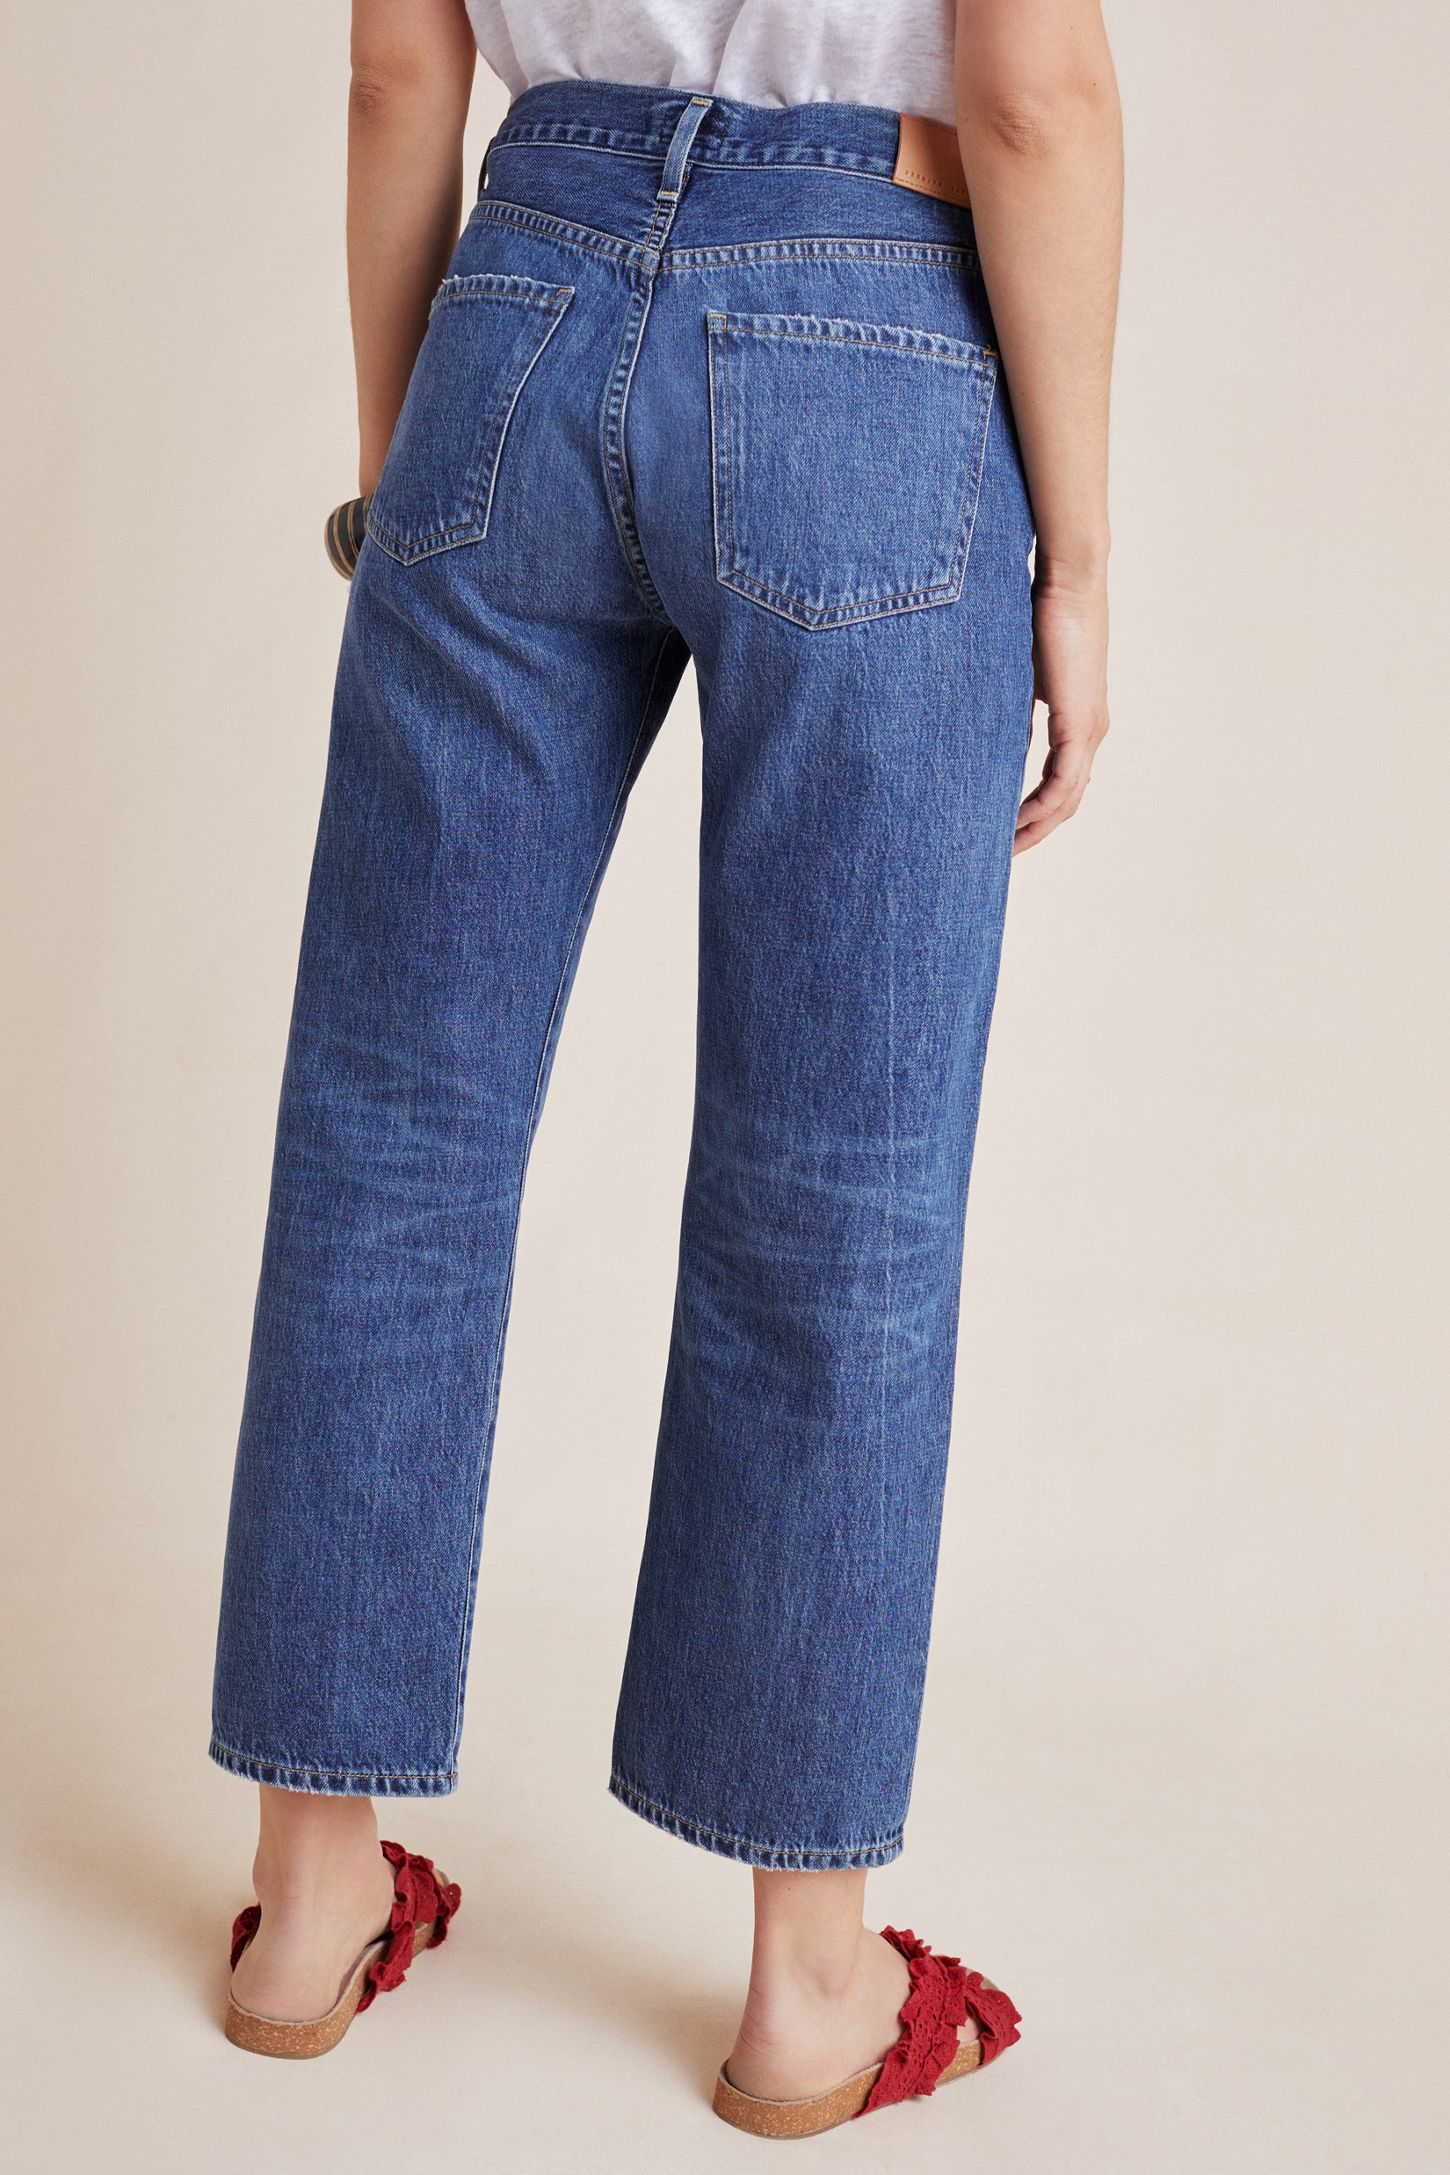 8430a8d656ac Slide View: 5: Citizens of Humanity Emery High-Rise Straight Cropped Jeans